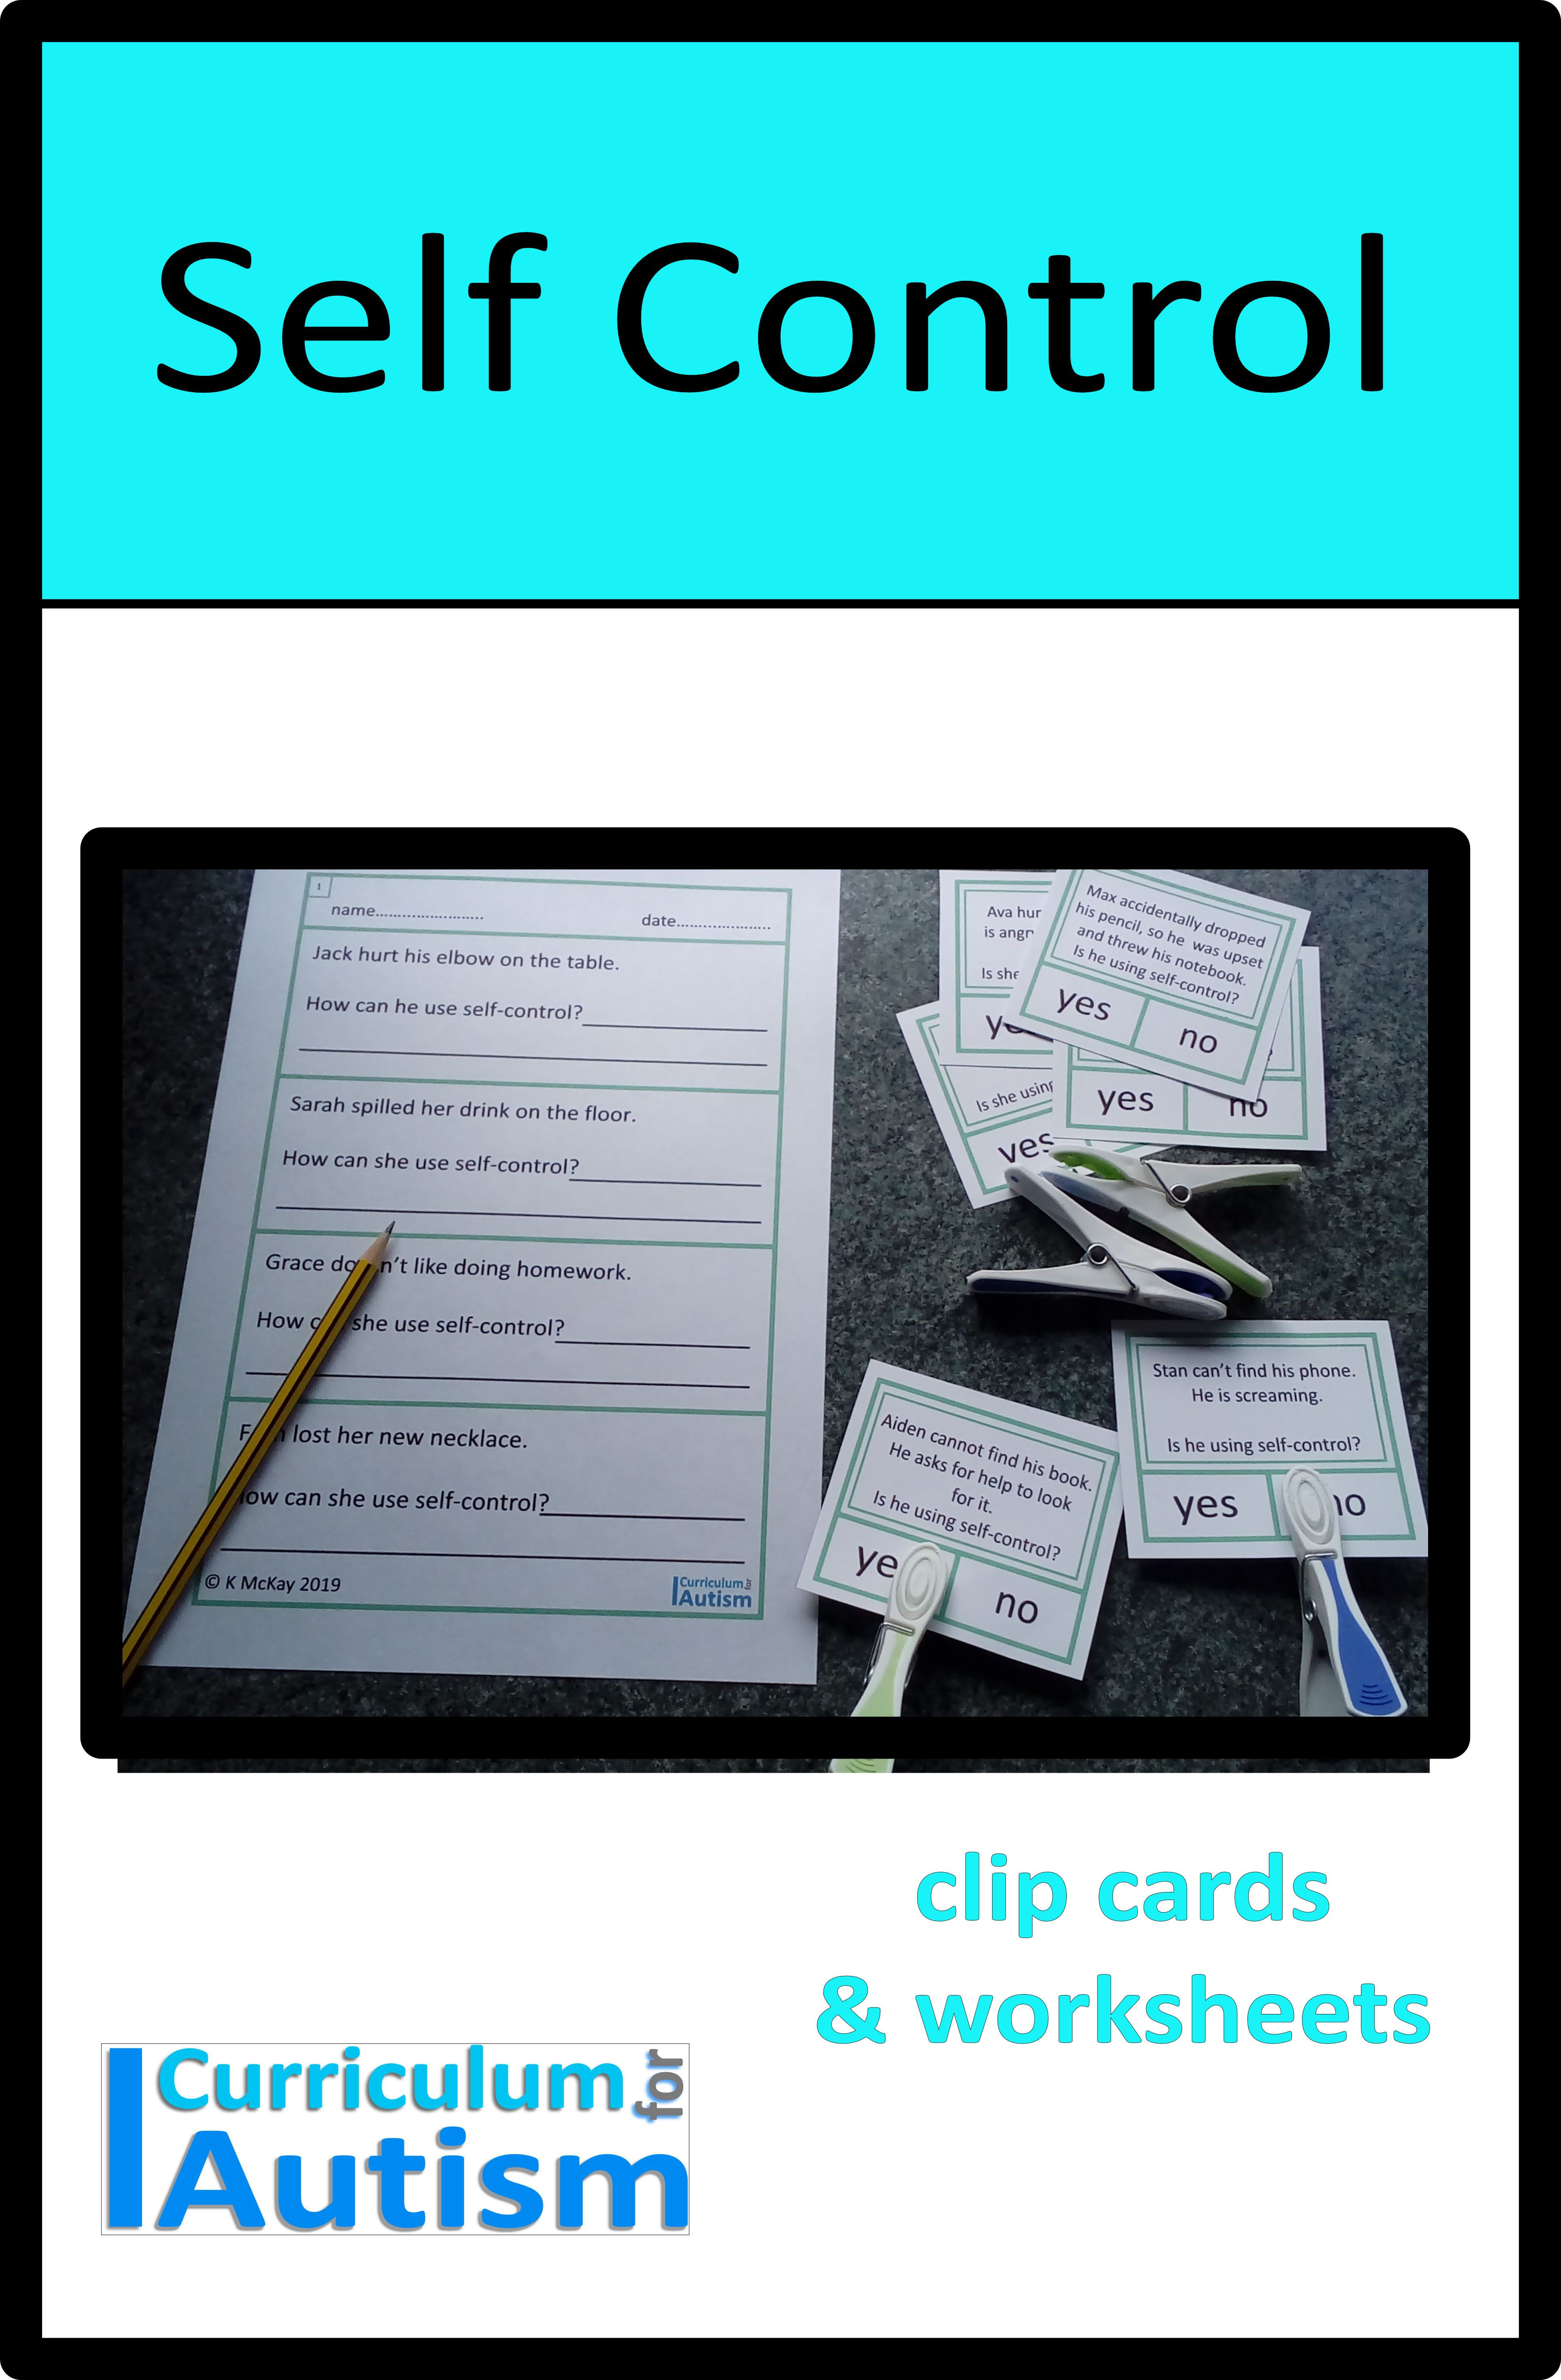 Self Control Cards Amp Worksheets